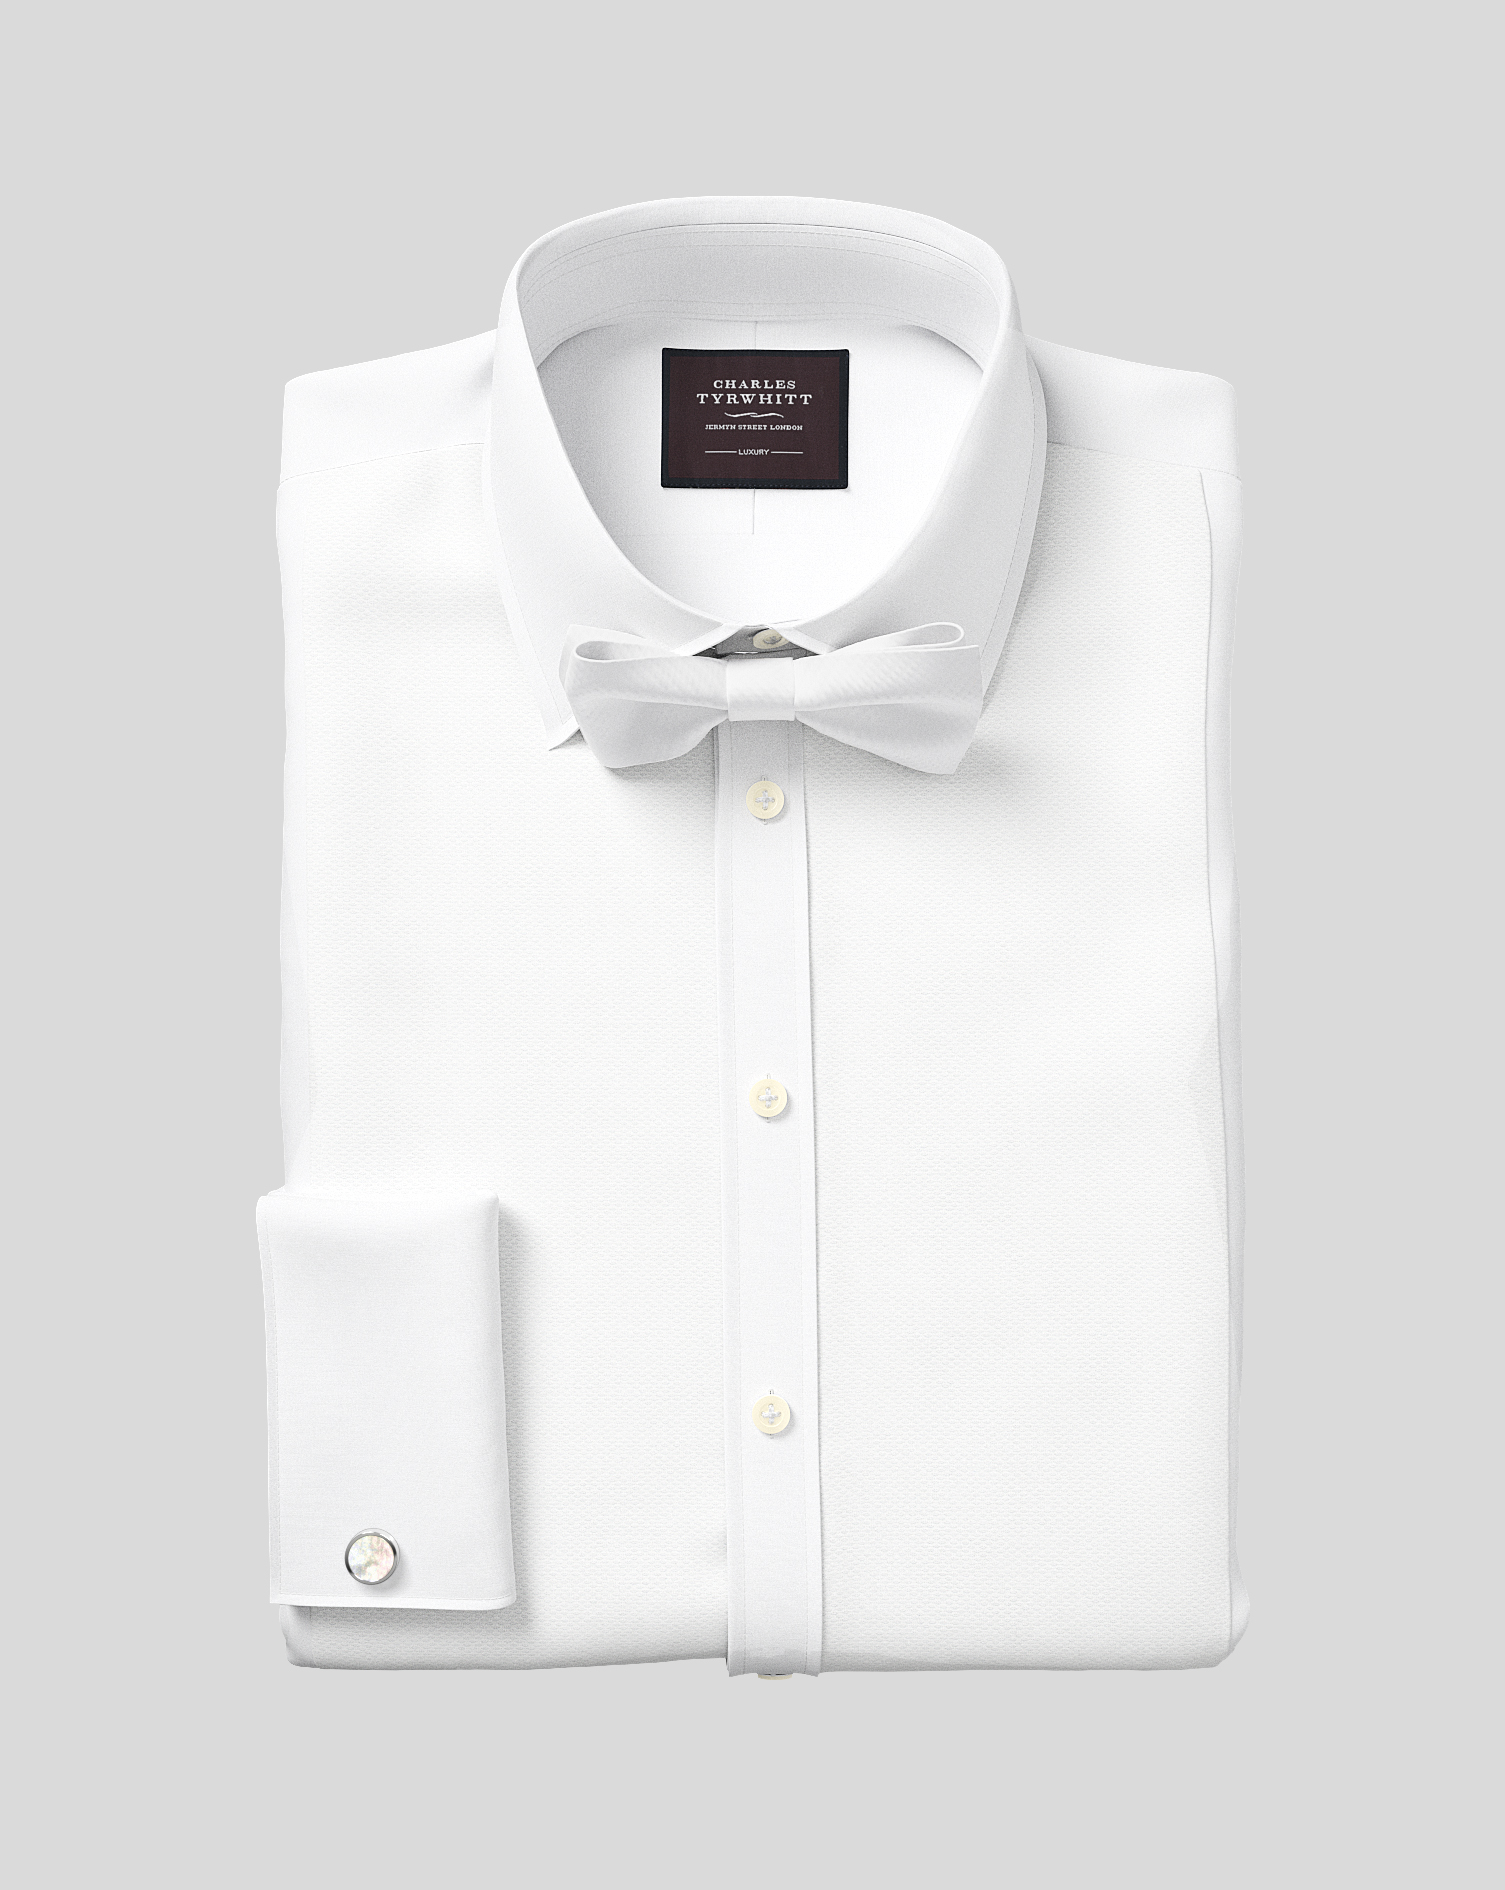 Slim Fit Luxury Marcella White Tuxedo Shirt Charles Tyrwhitt